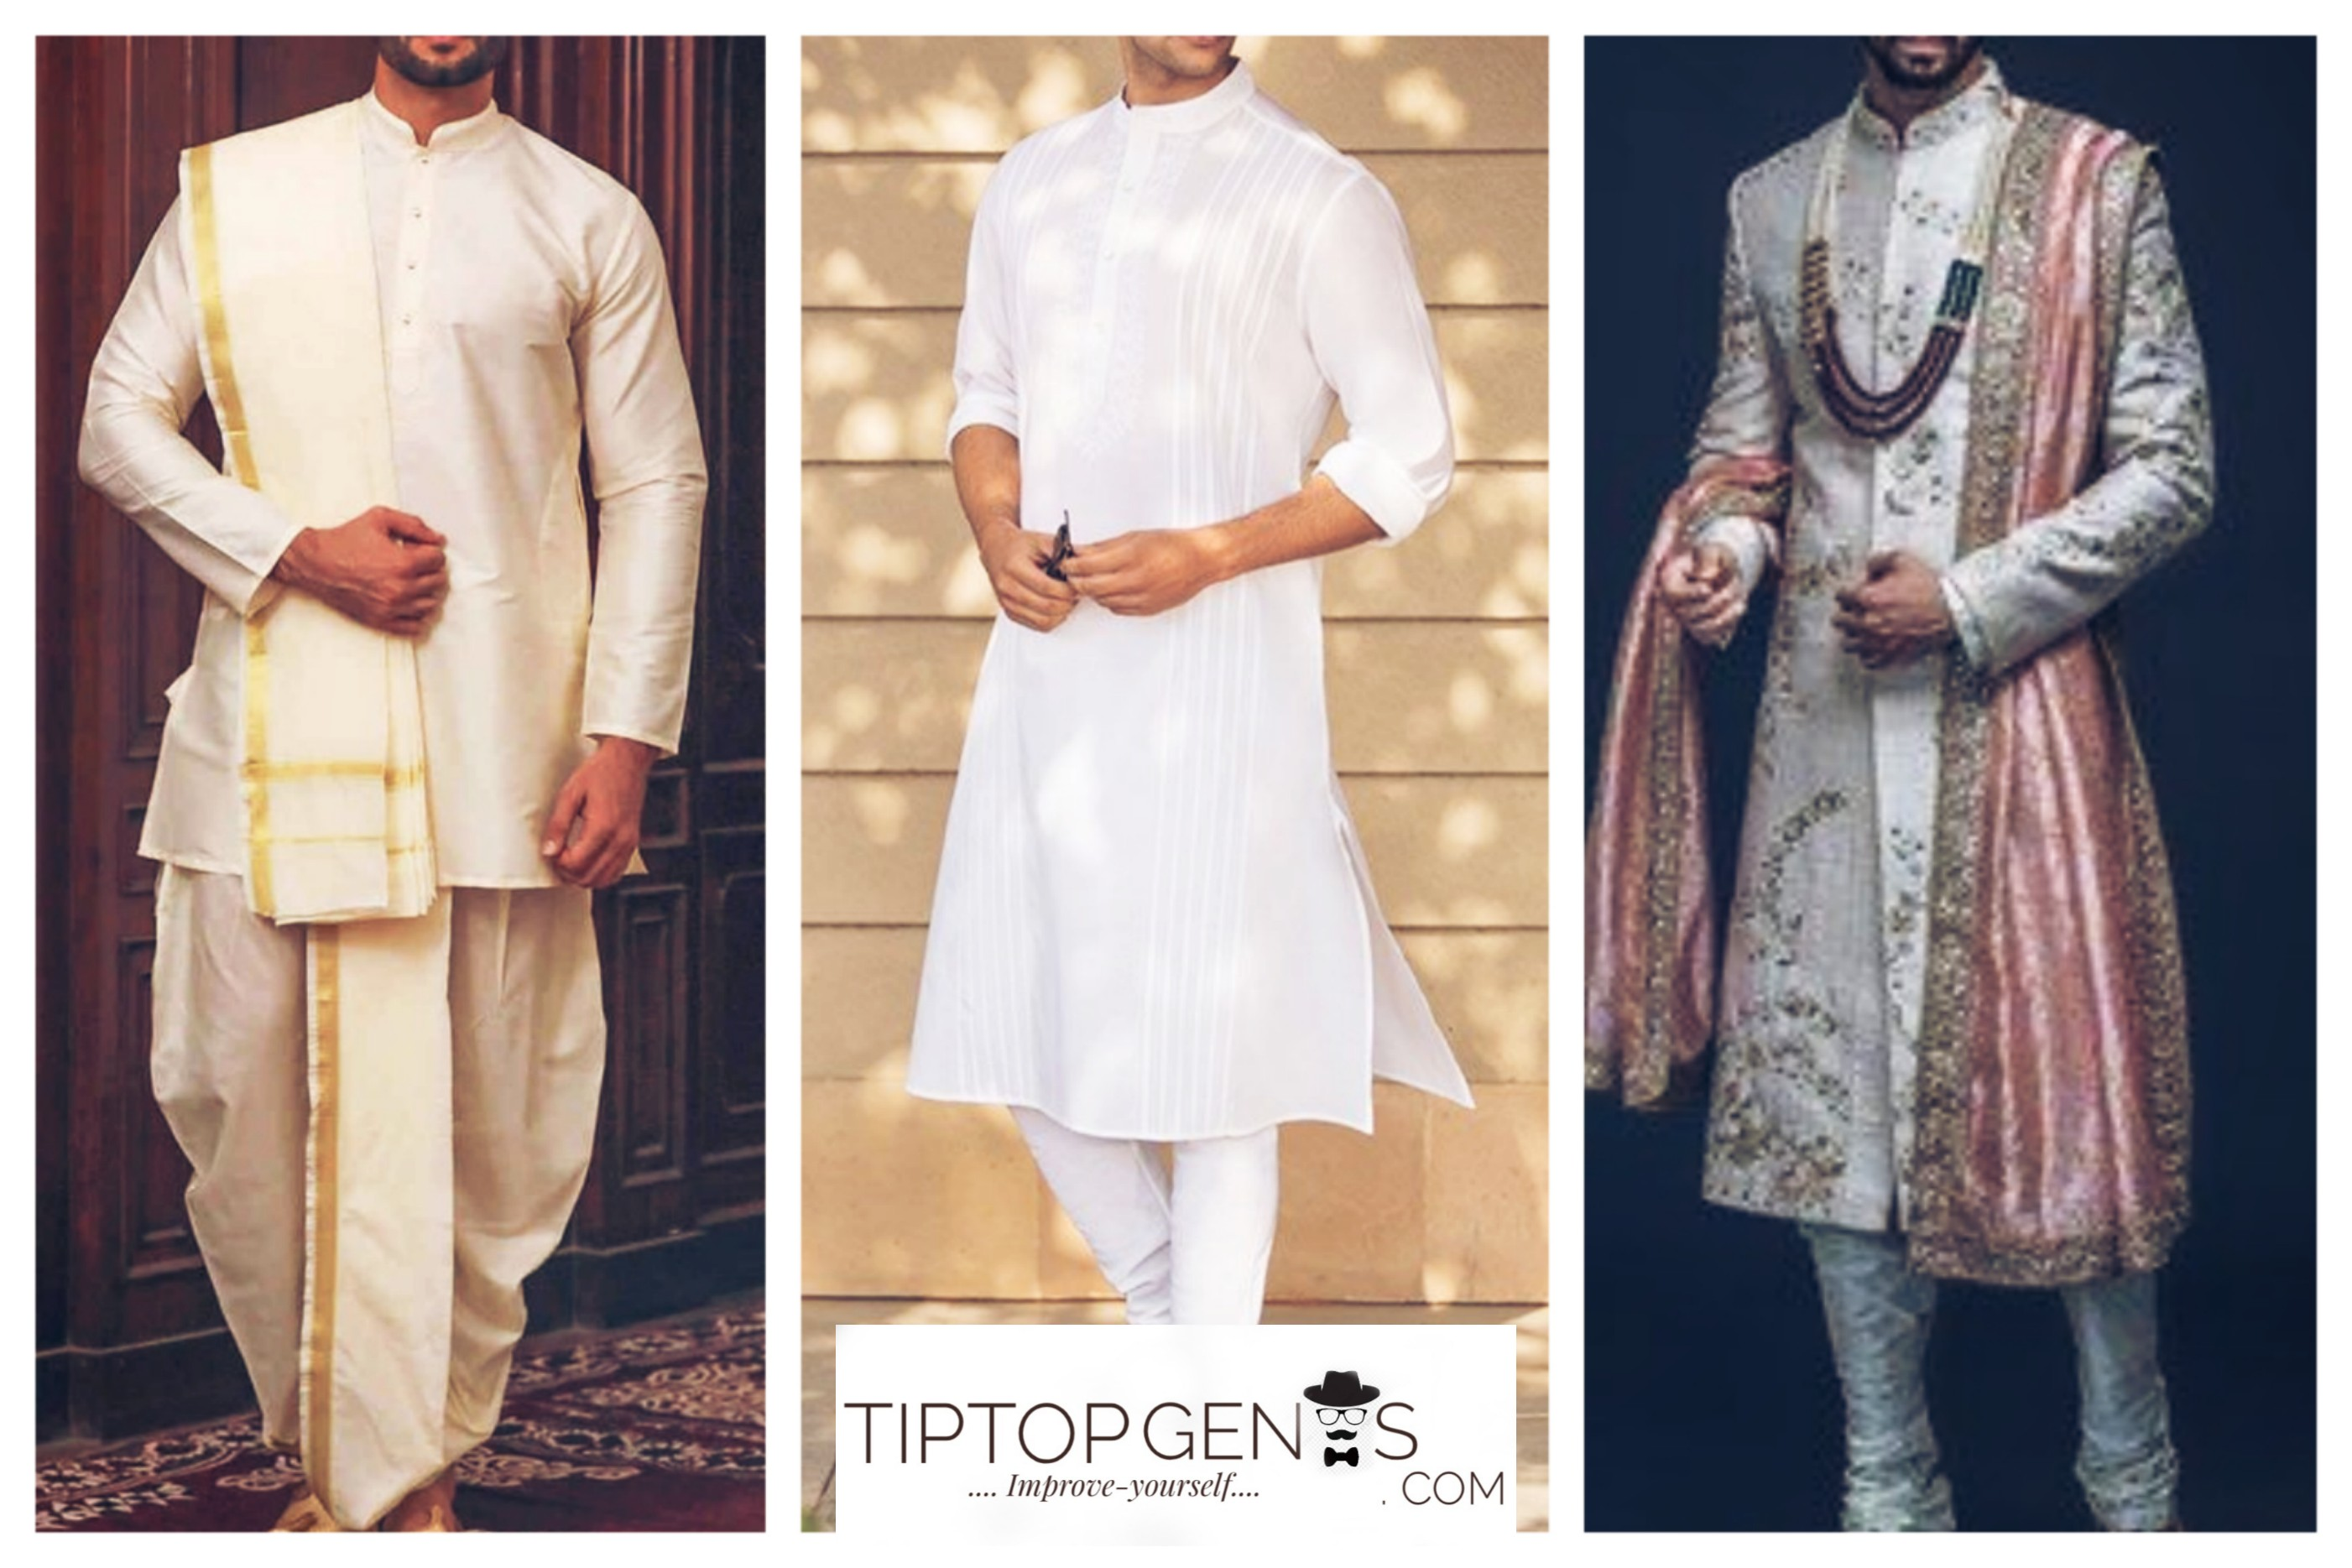 Three different traditional wears, worn by Indian men.